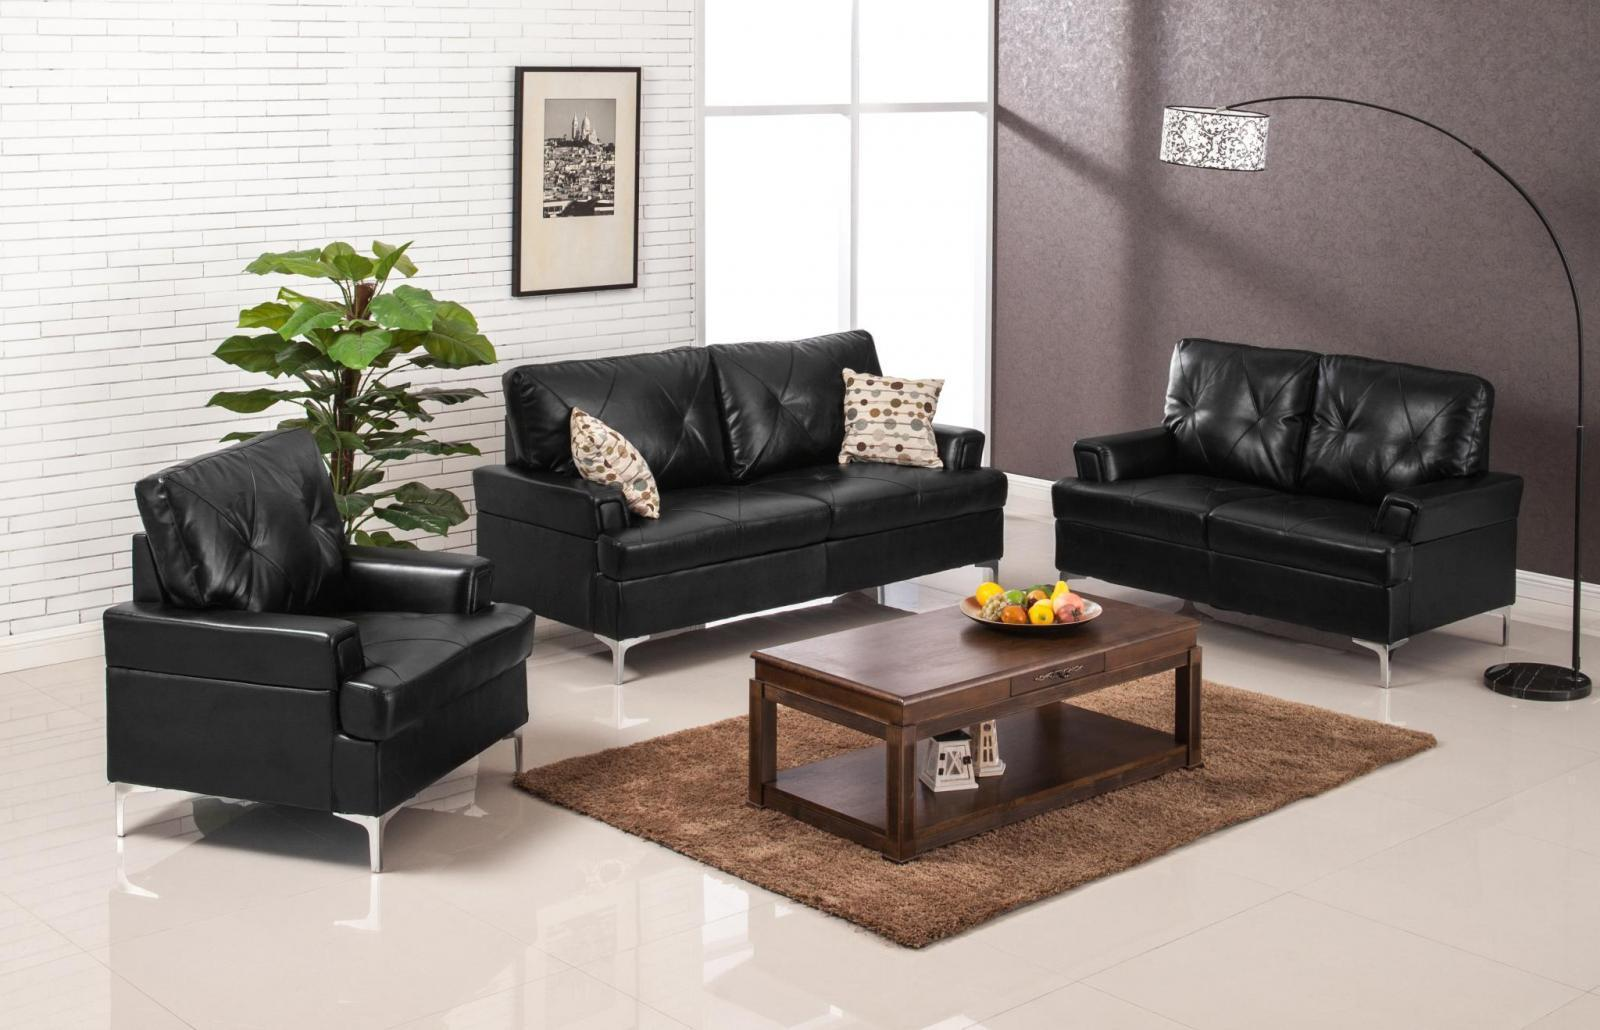 Myco Furniture Walker Modern Black Bonded Leather Living Room Sofa Set 3 Pcs